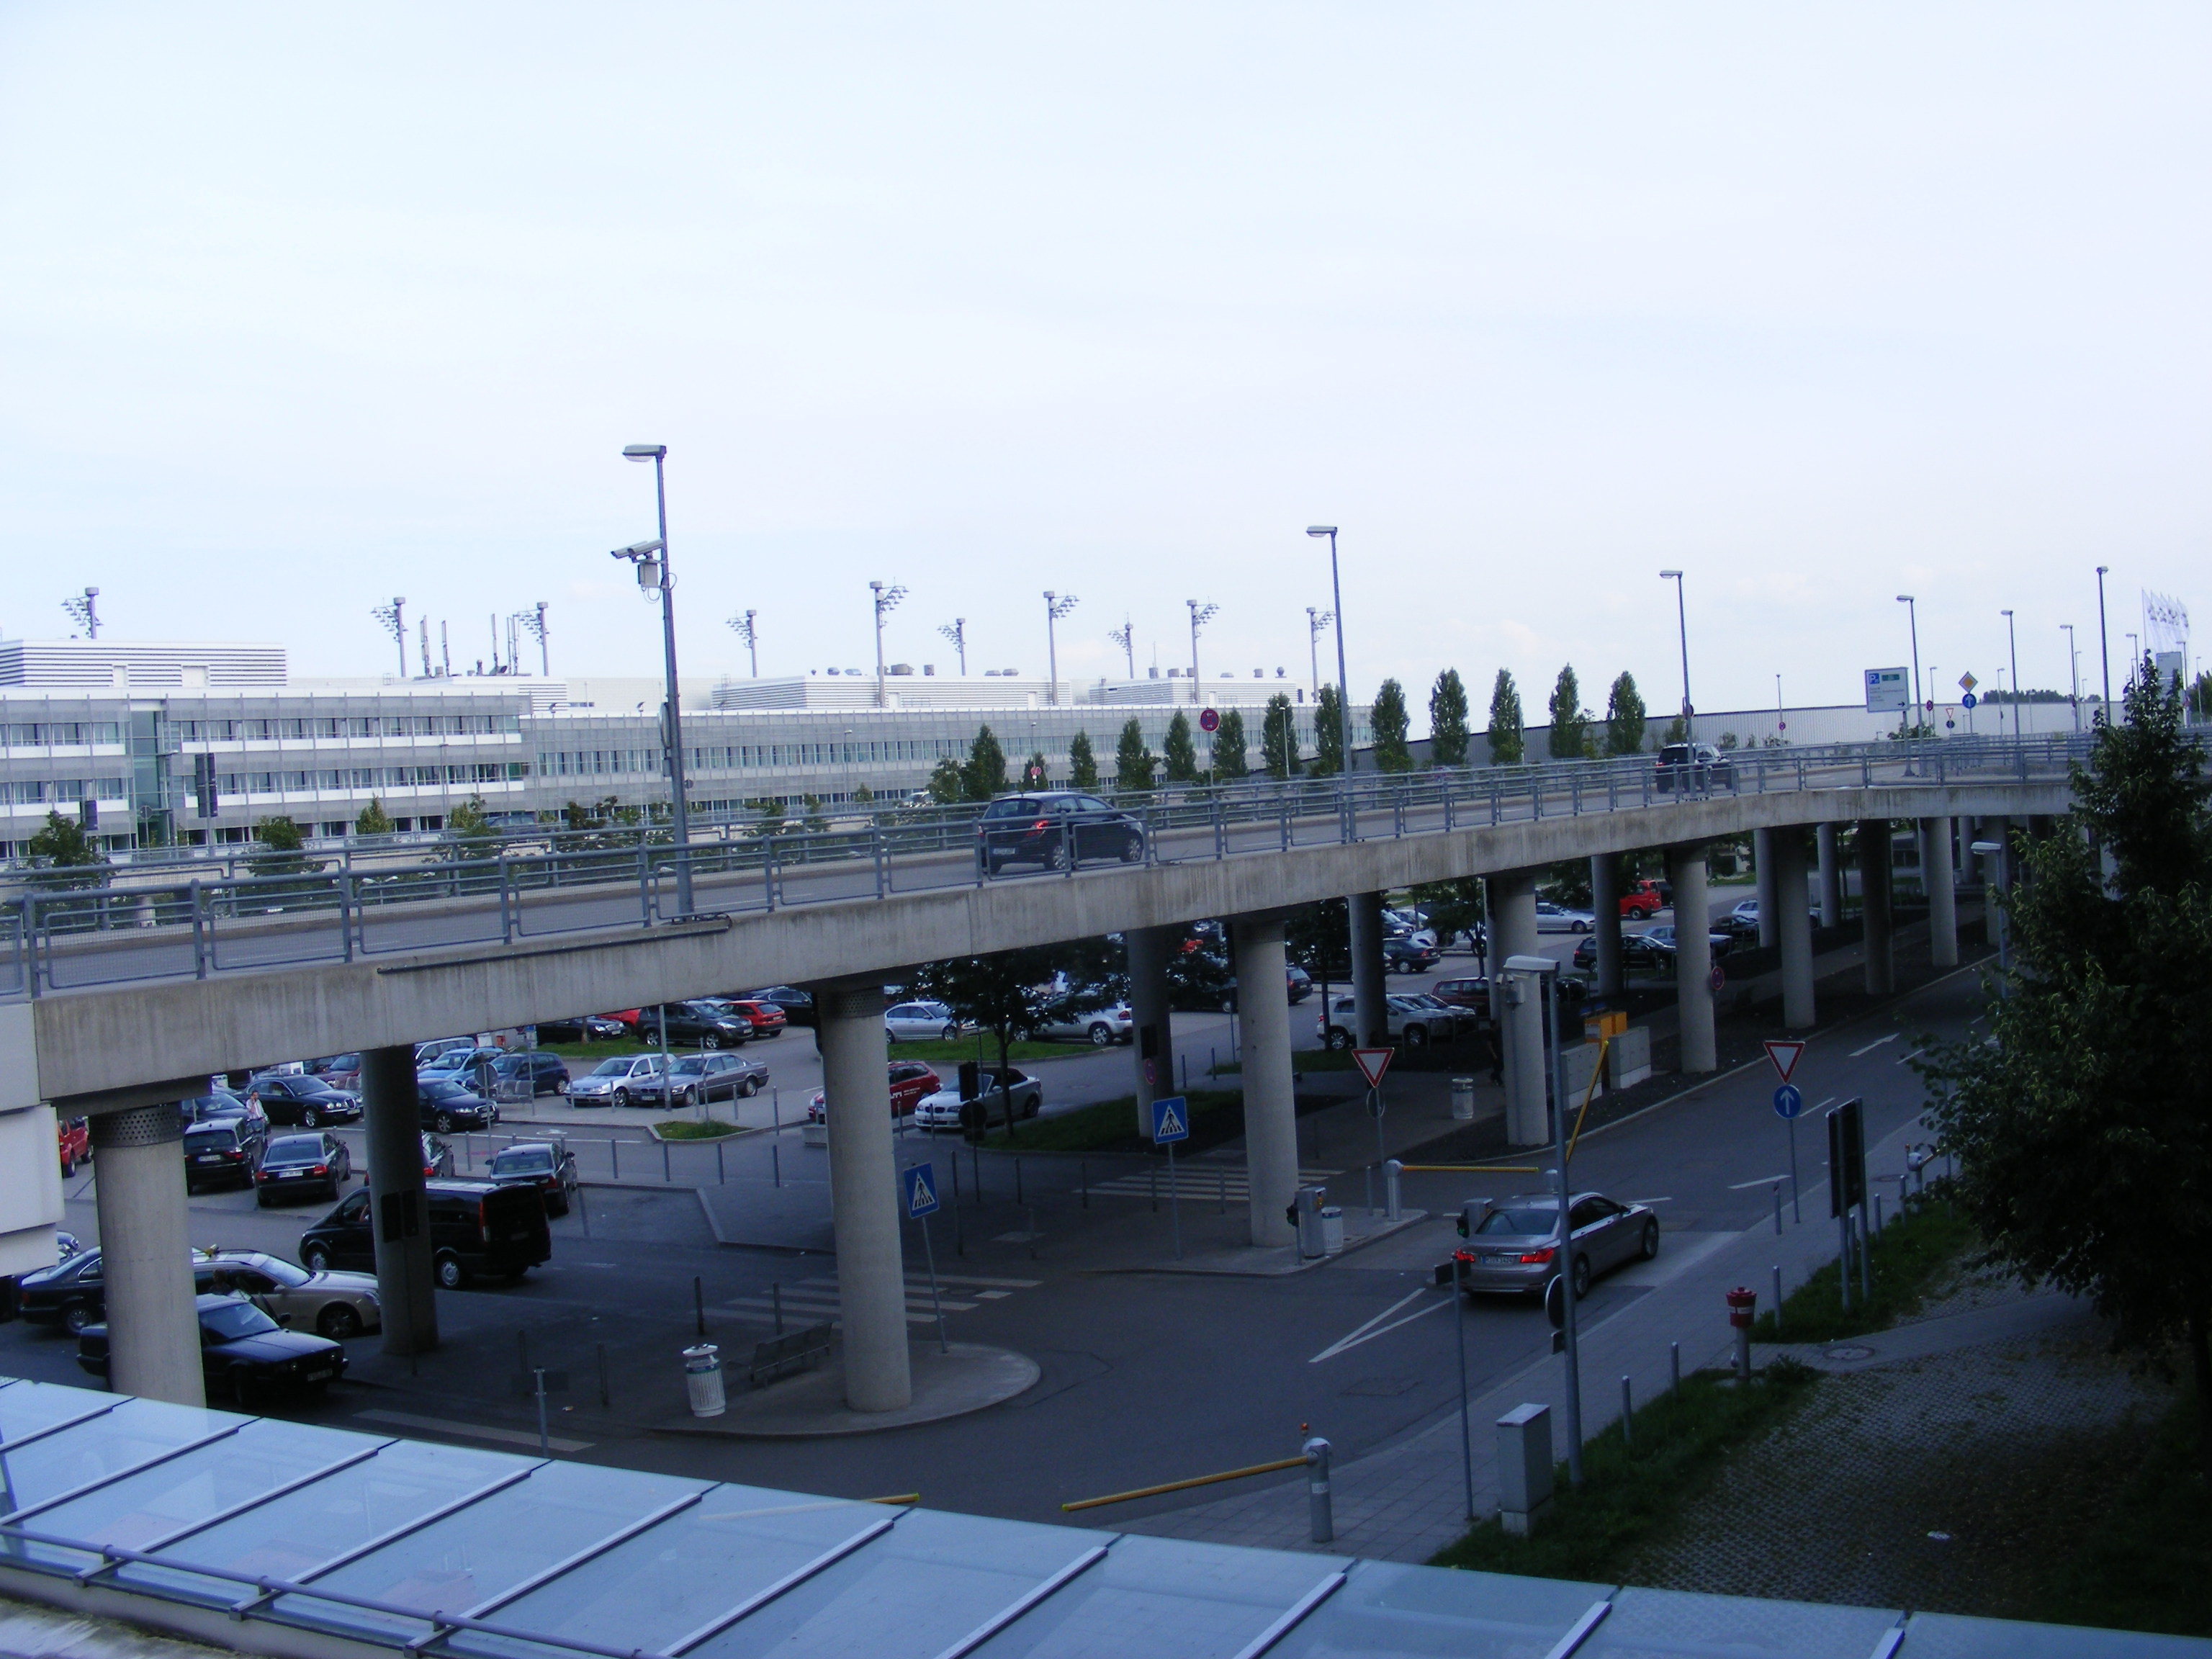 Munich International Airport Hotels